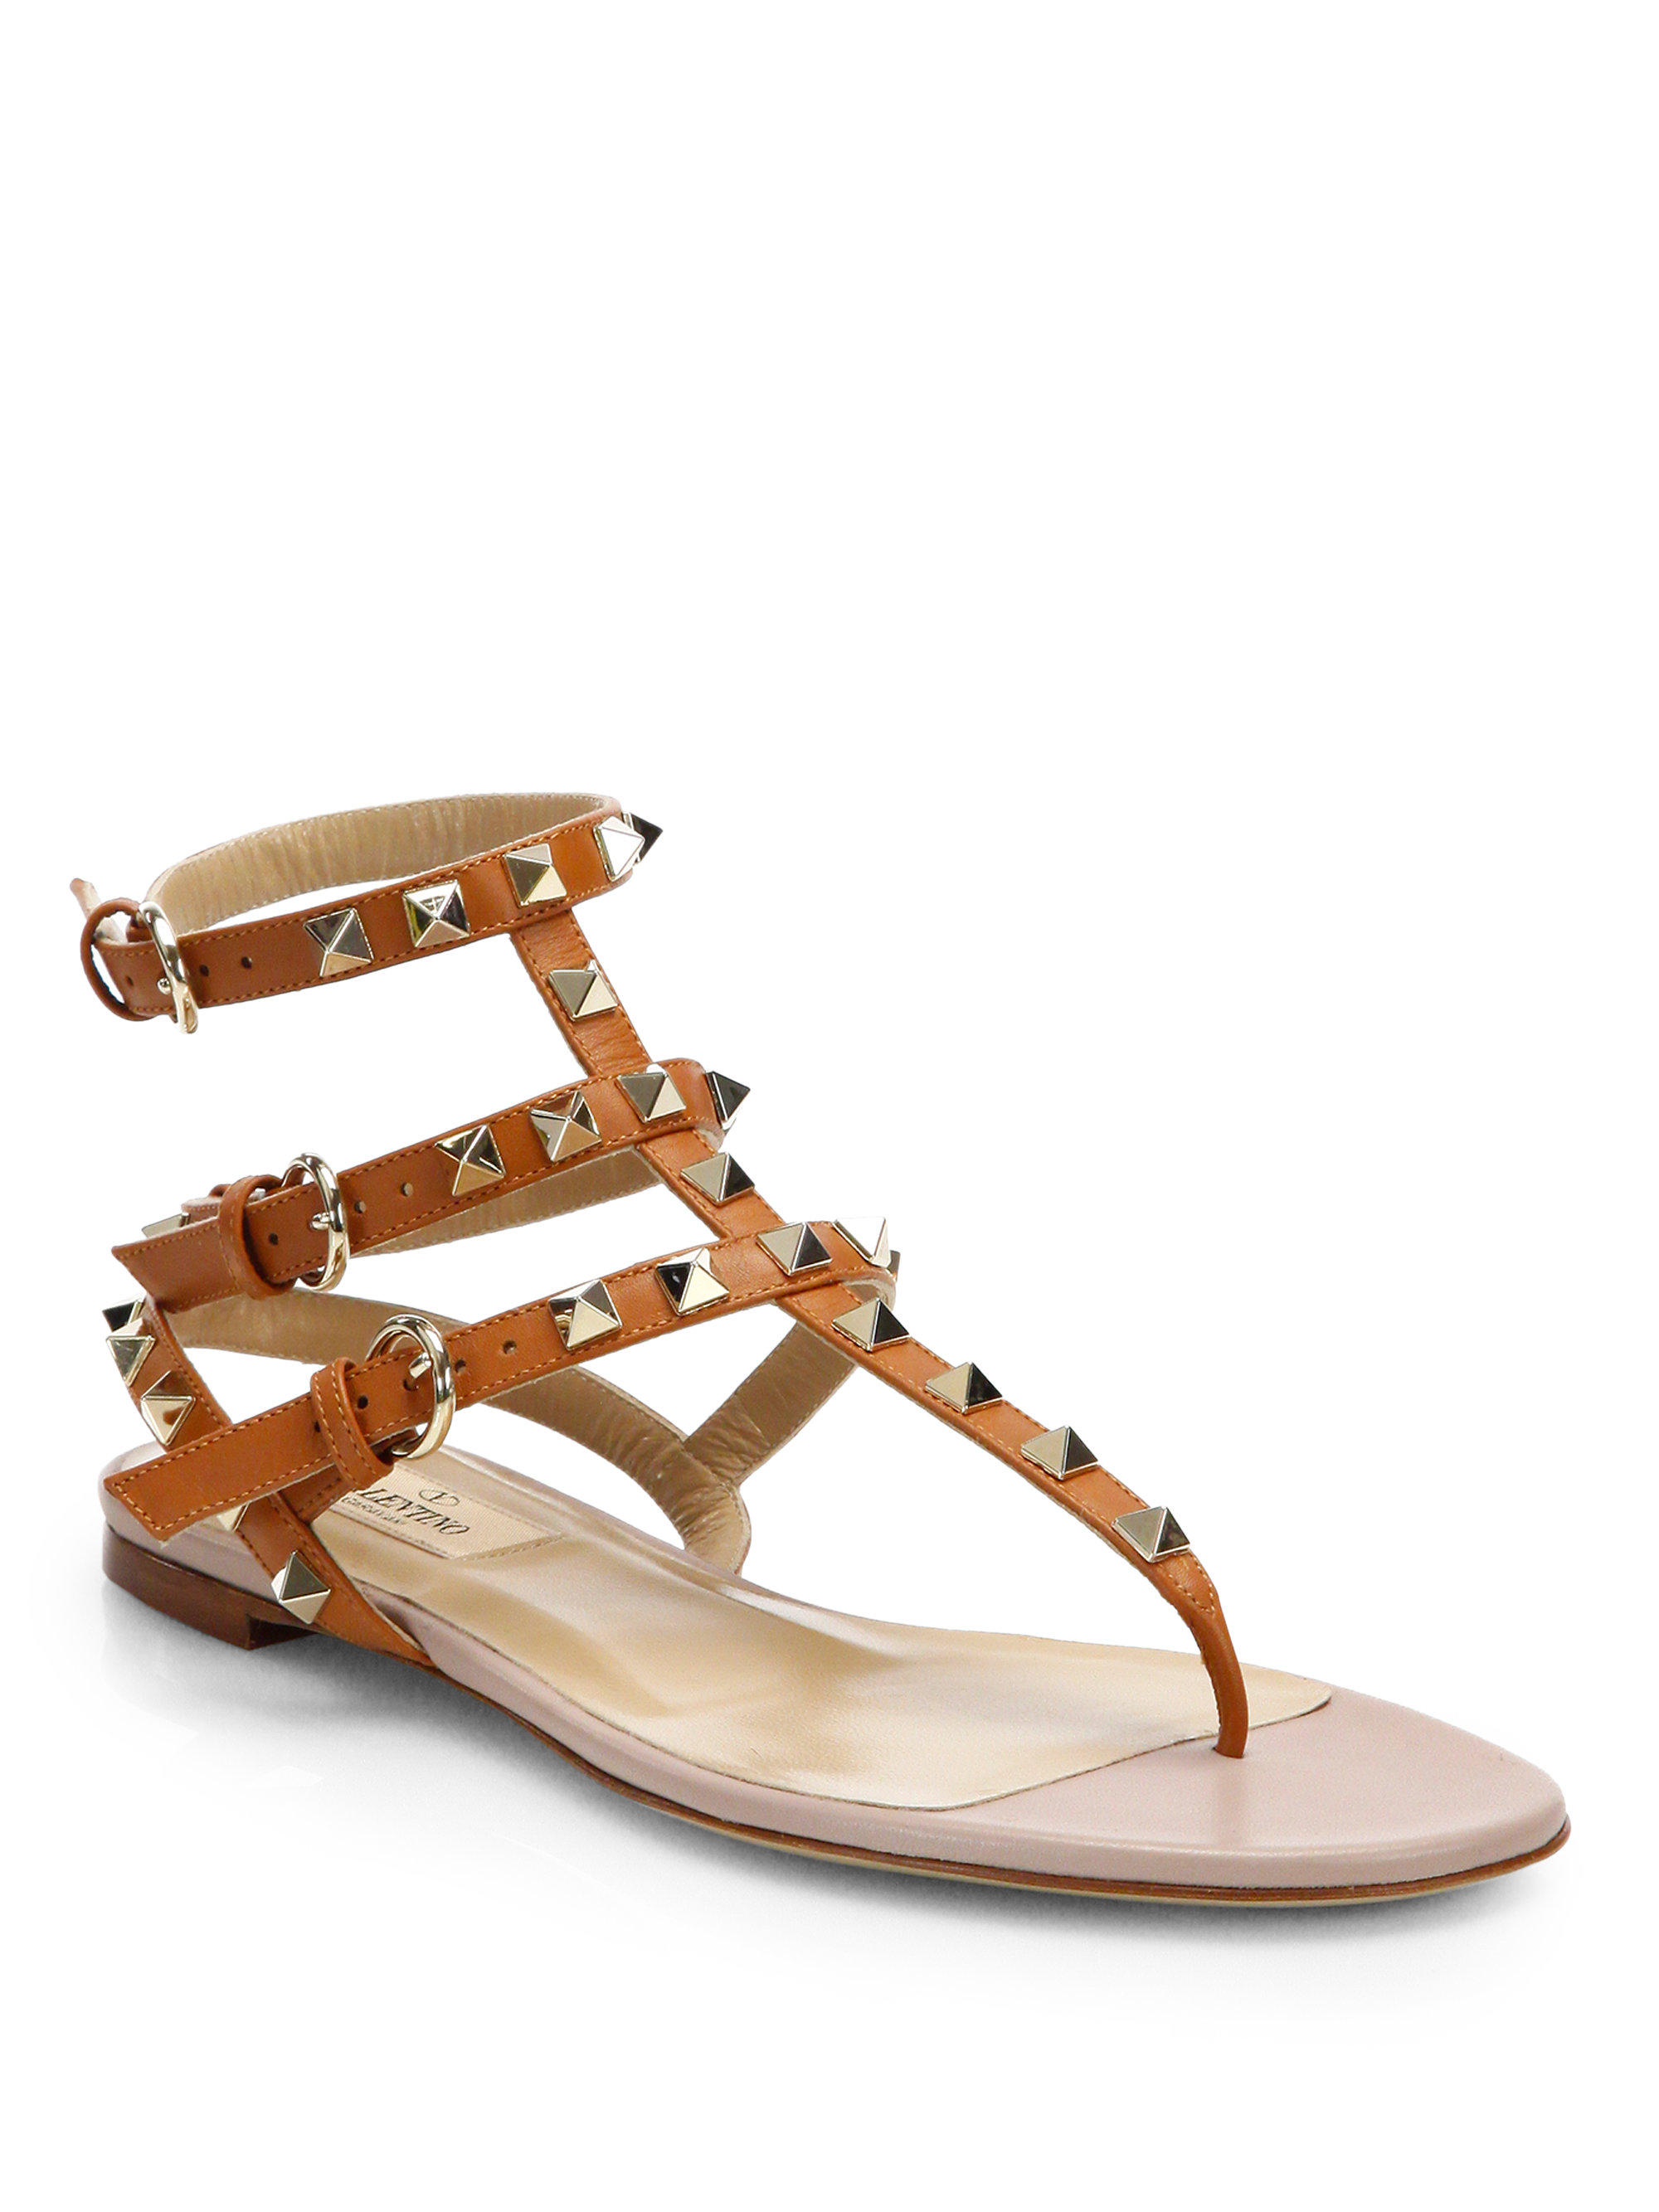 Valentino Rockstud Gladiator Thong Sandals in Brown